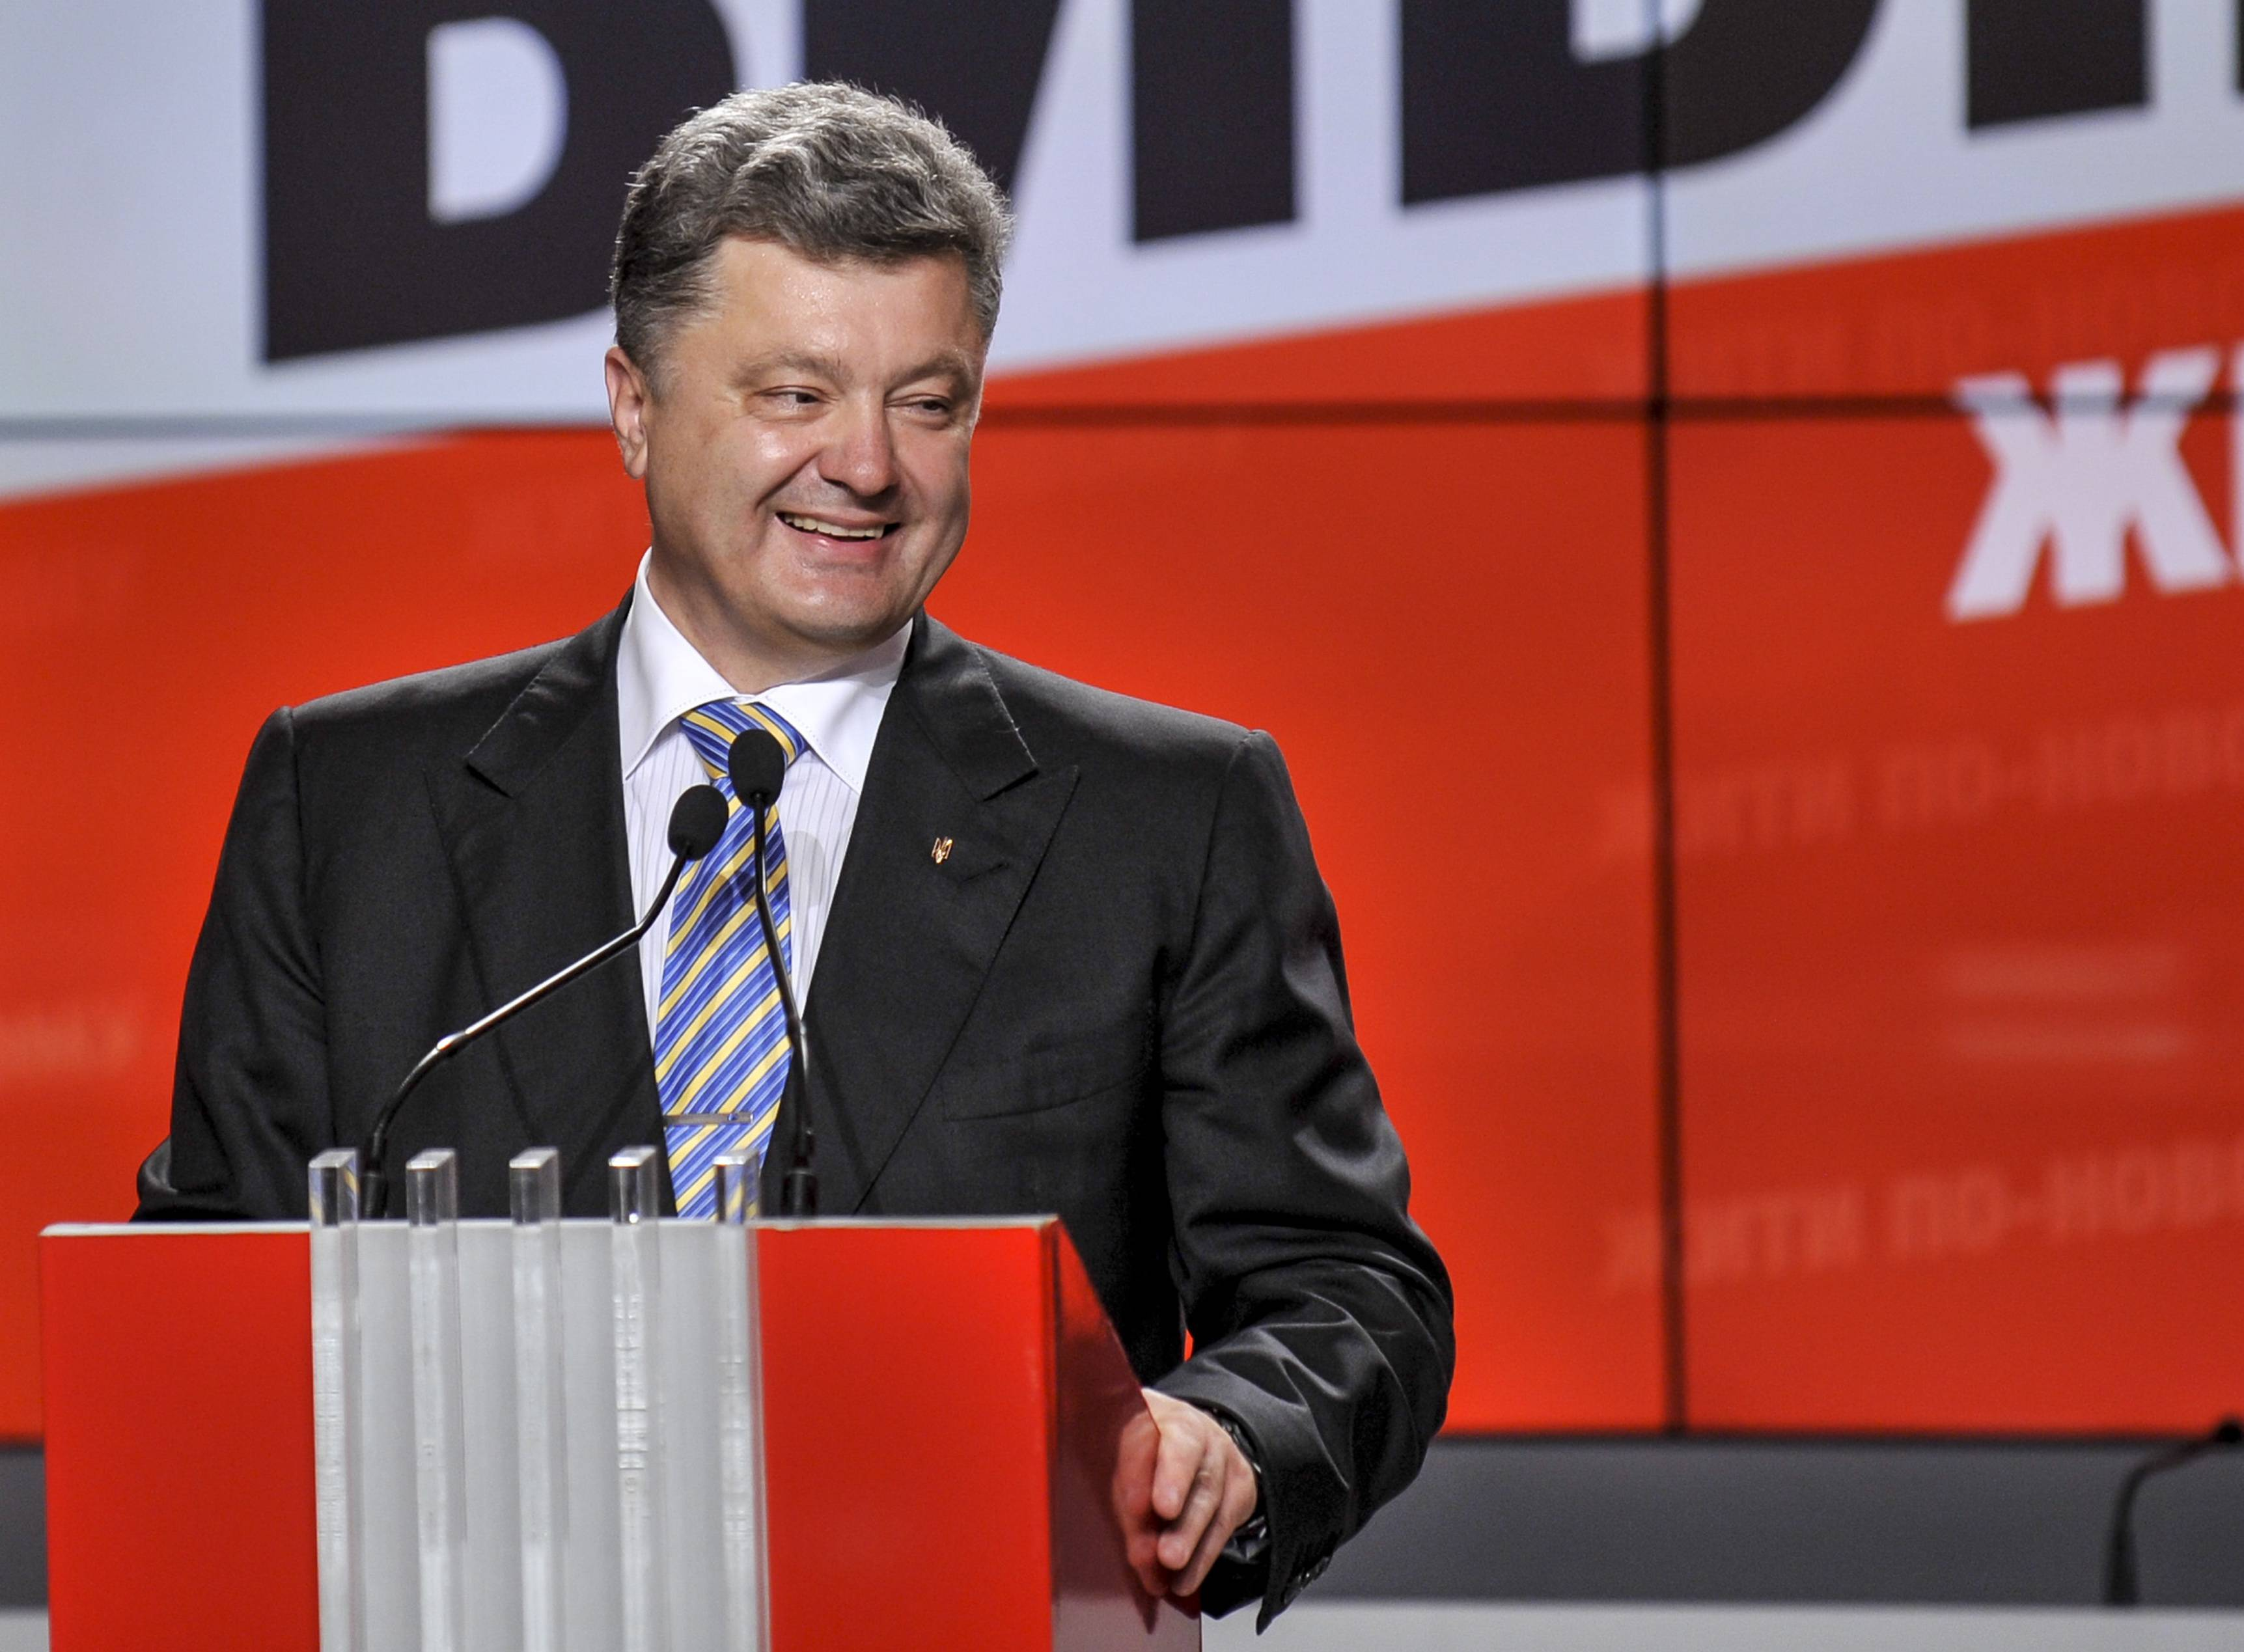 Apparent winning Ukrainian presidential candidate Petro Poroshenko smiles during his news conference in Kiev, Ukraine, Sunday.